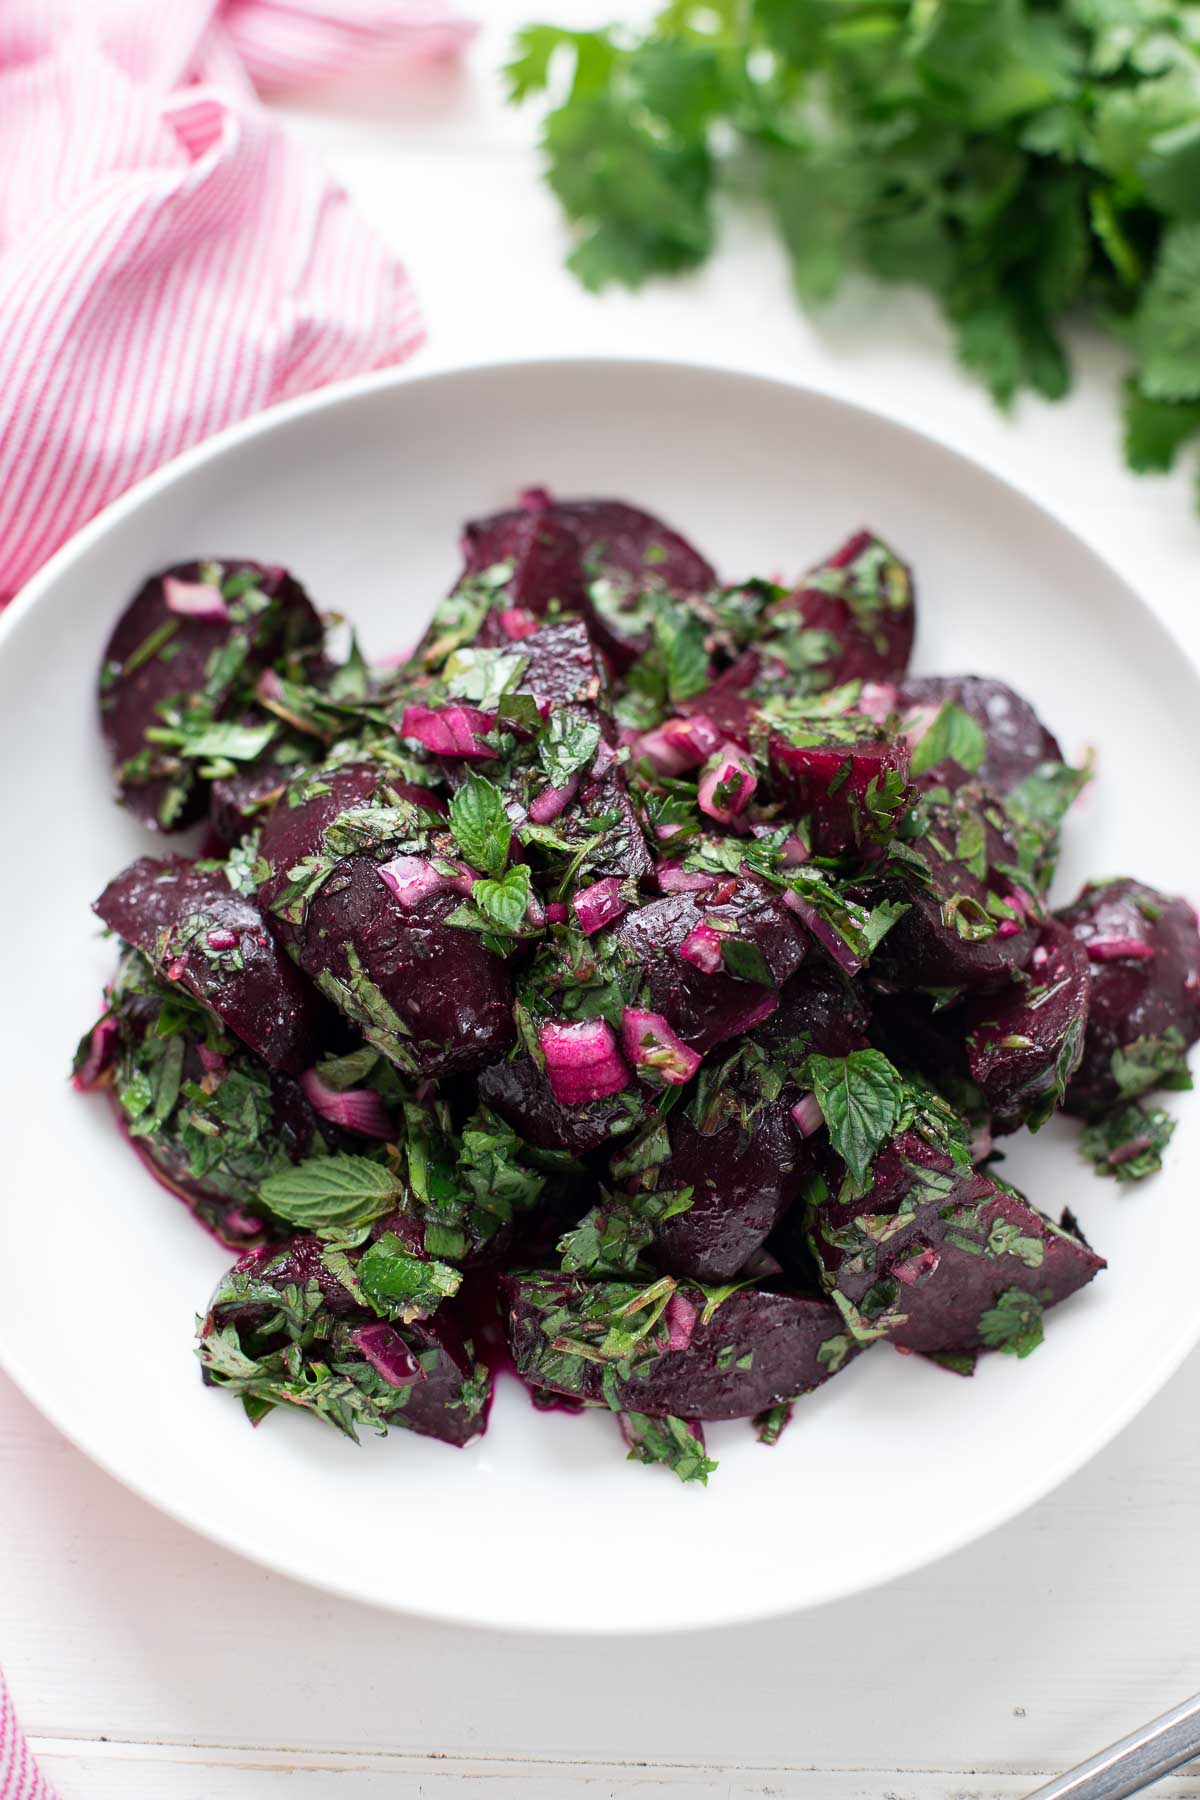 This simple simple beetroot salad with fresh parsley, cilantro and mint